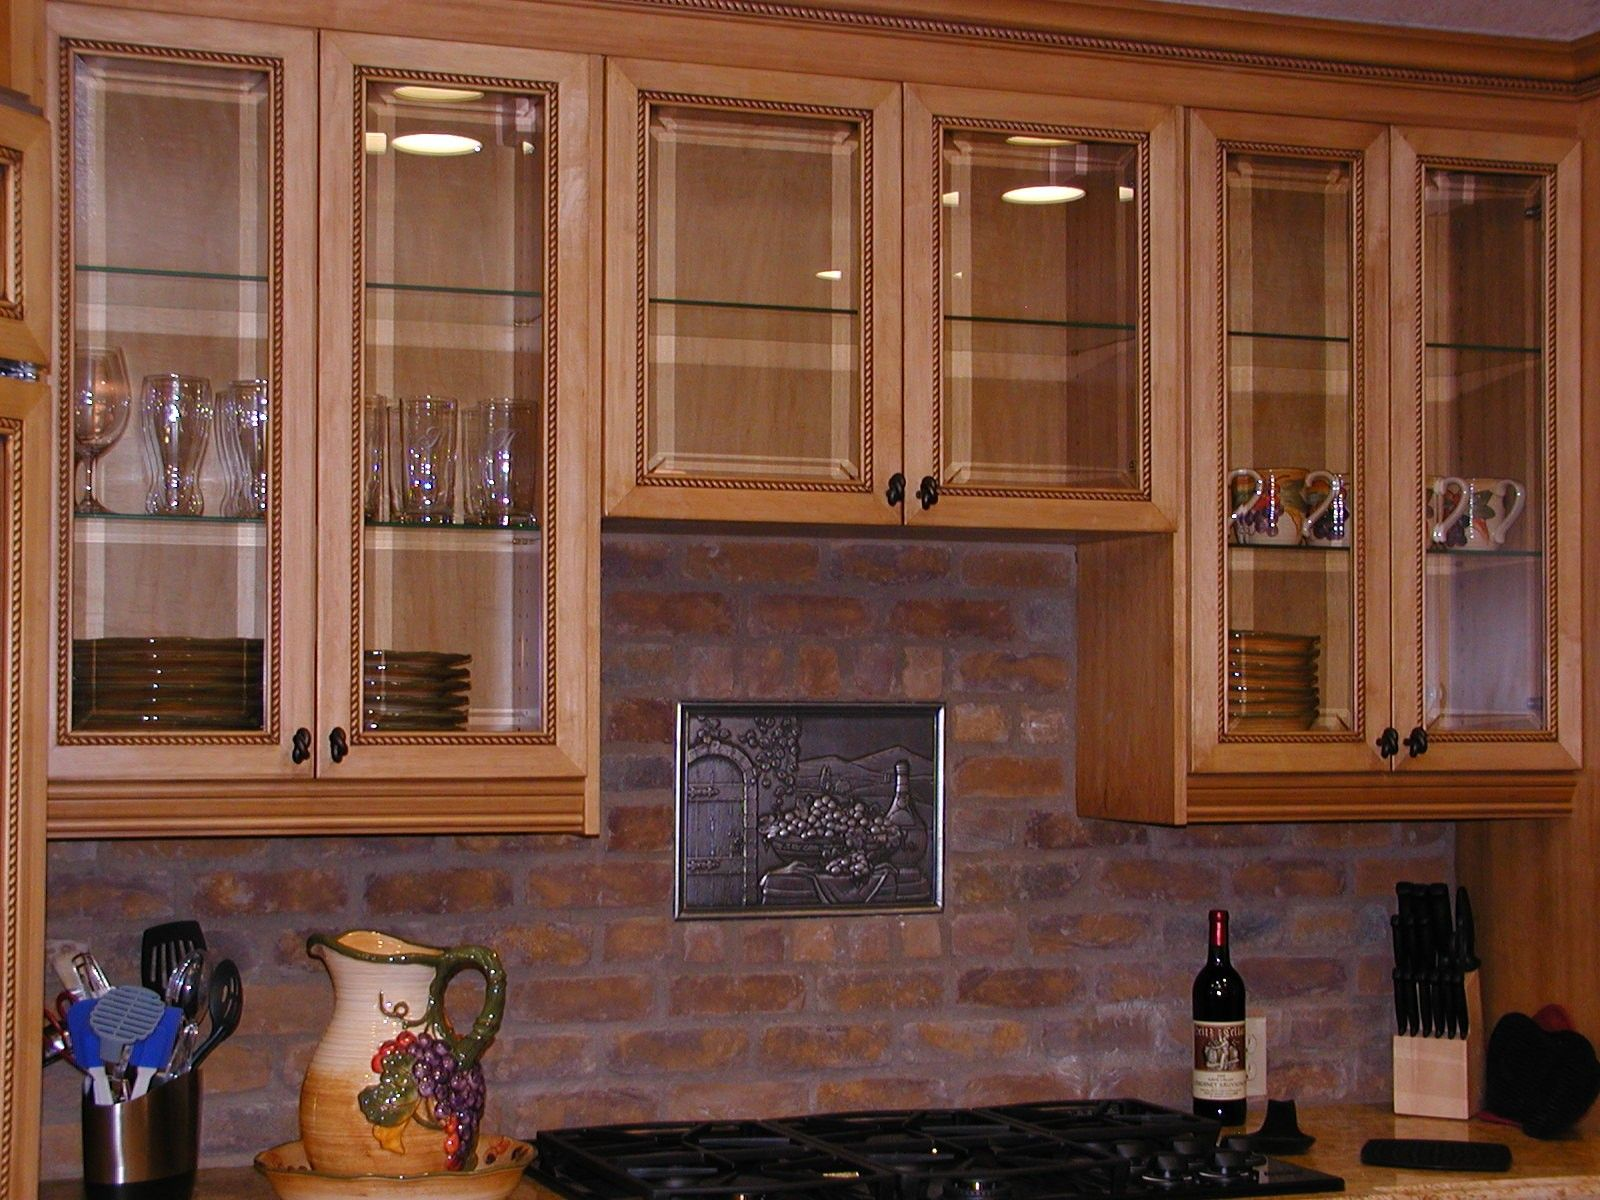 How To Make Kitchen Cabinet Doors With Glass Kitchen Decorating Ideas For Above Kitchen Cabinets 3